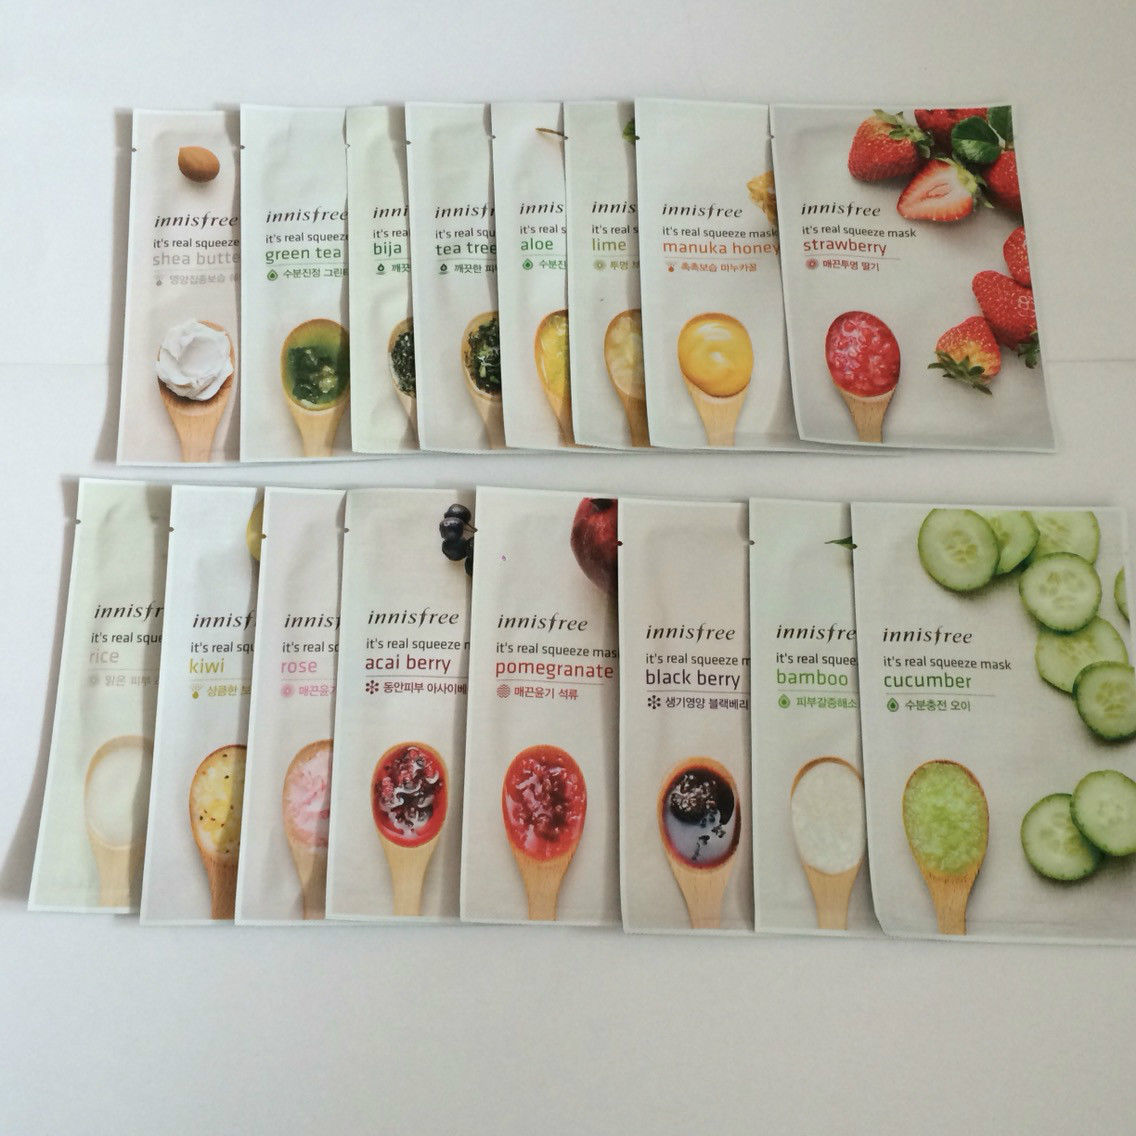 innisfree It's Real Squeeze Mask Series 20ml and 50 similar items. S l1600